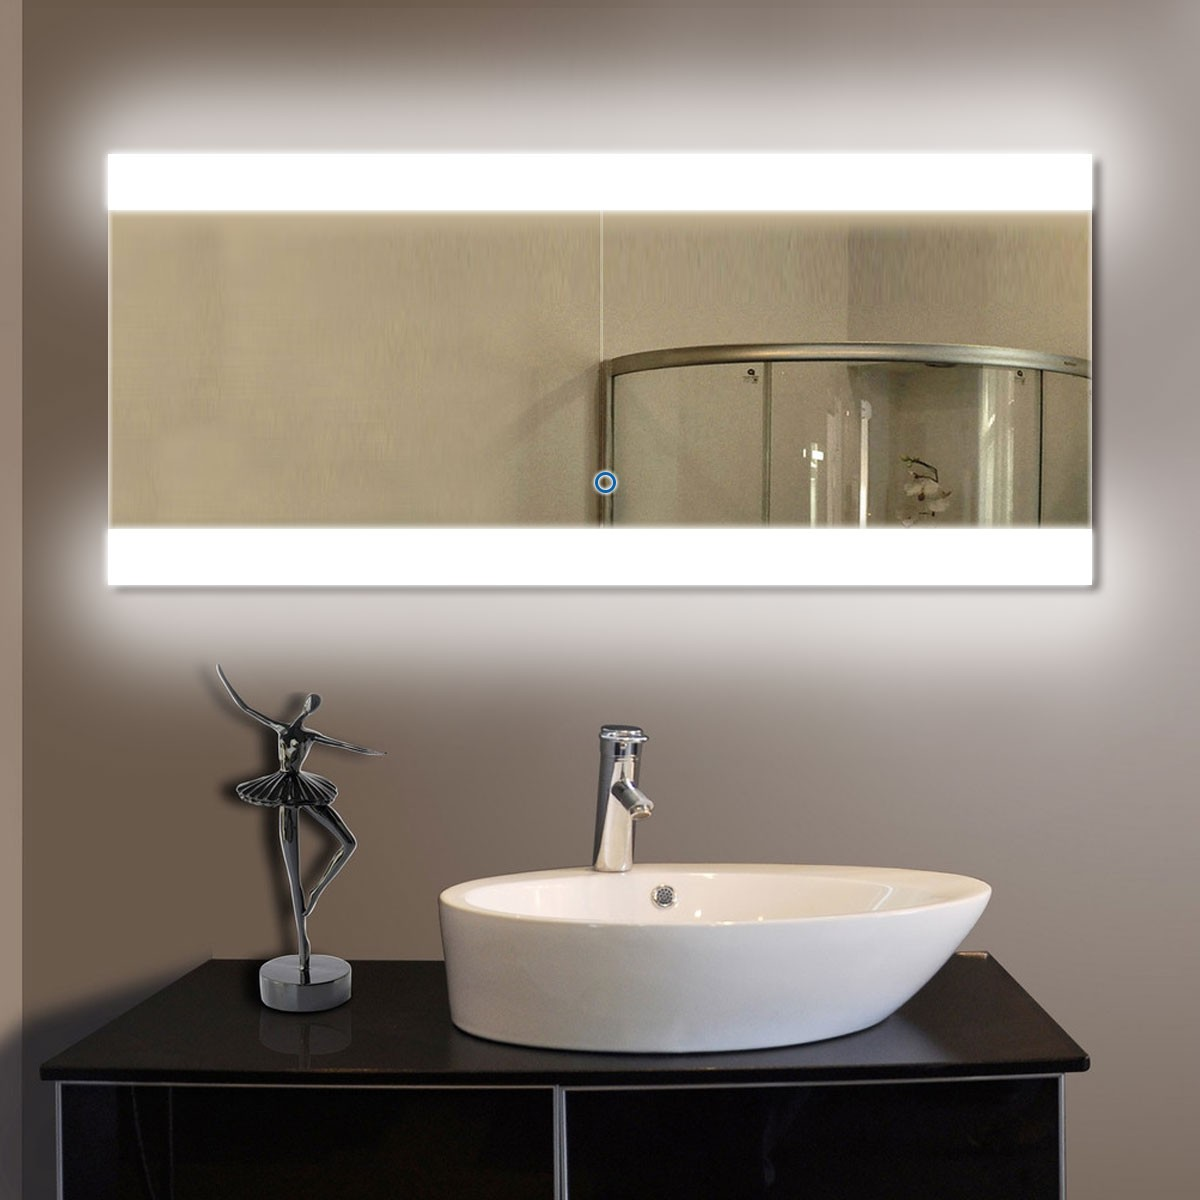 80 x 36 In Horizontal LED Bathroom Silvered Mirror with Touch Button DKODT032  Decoraport